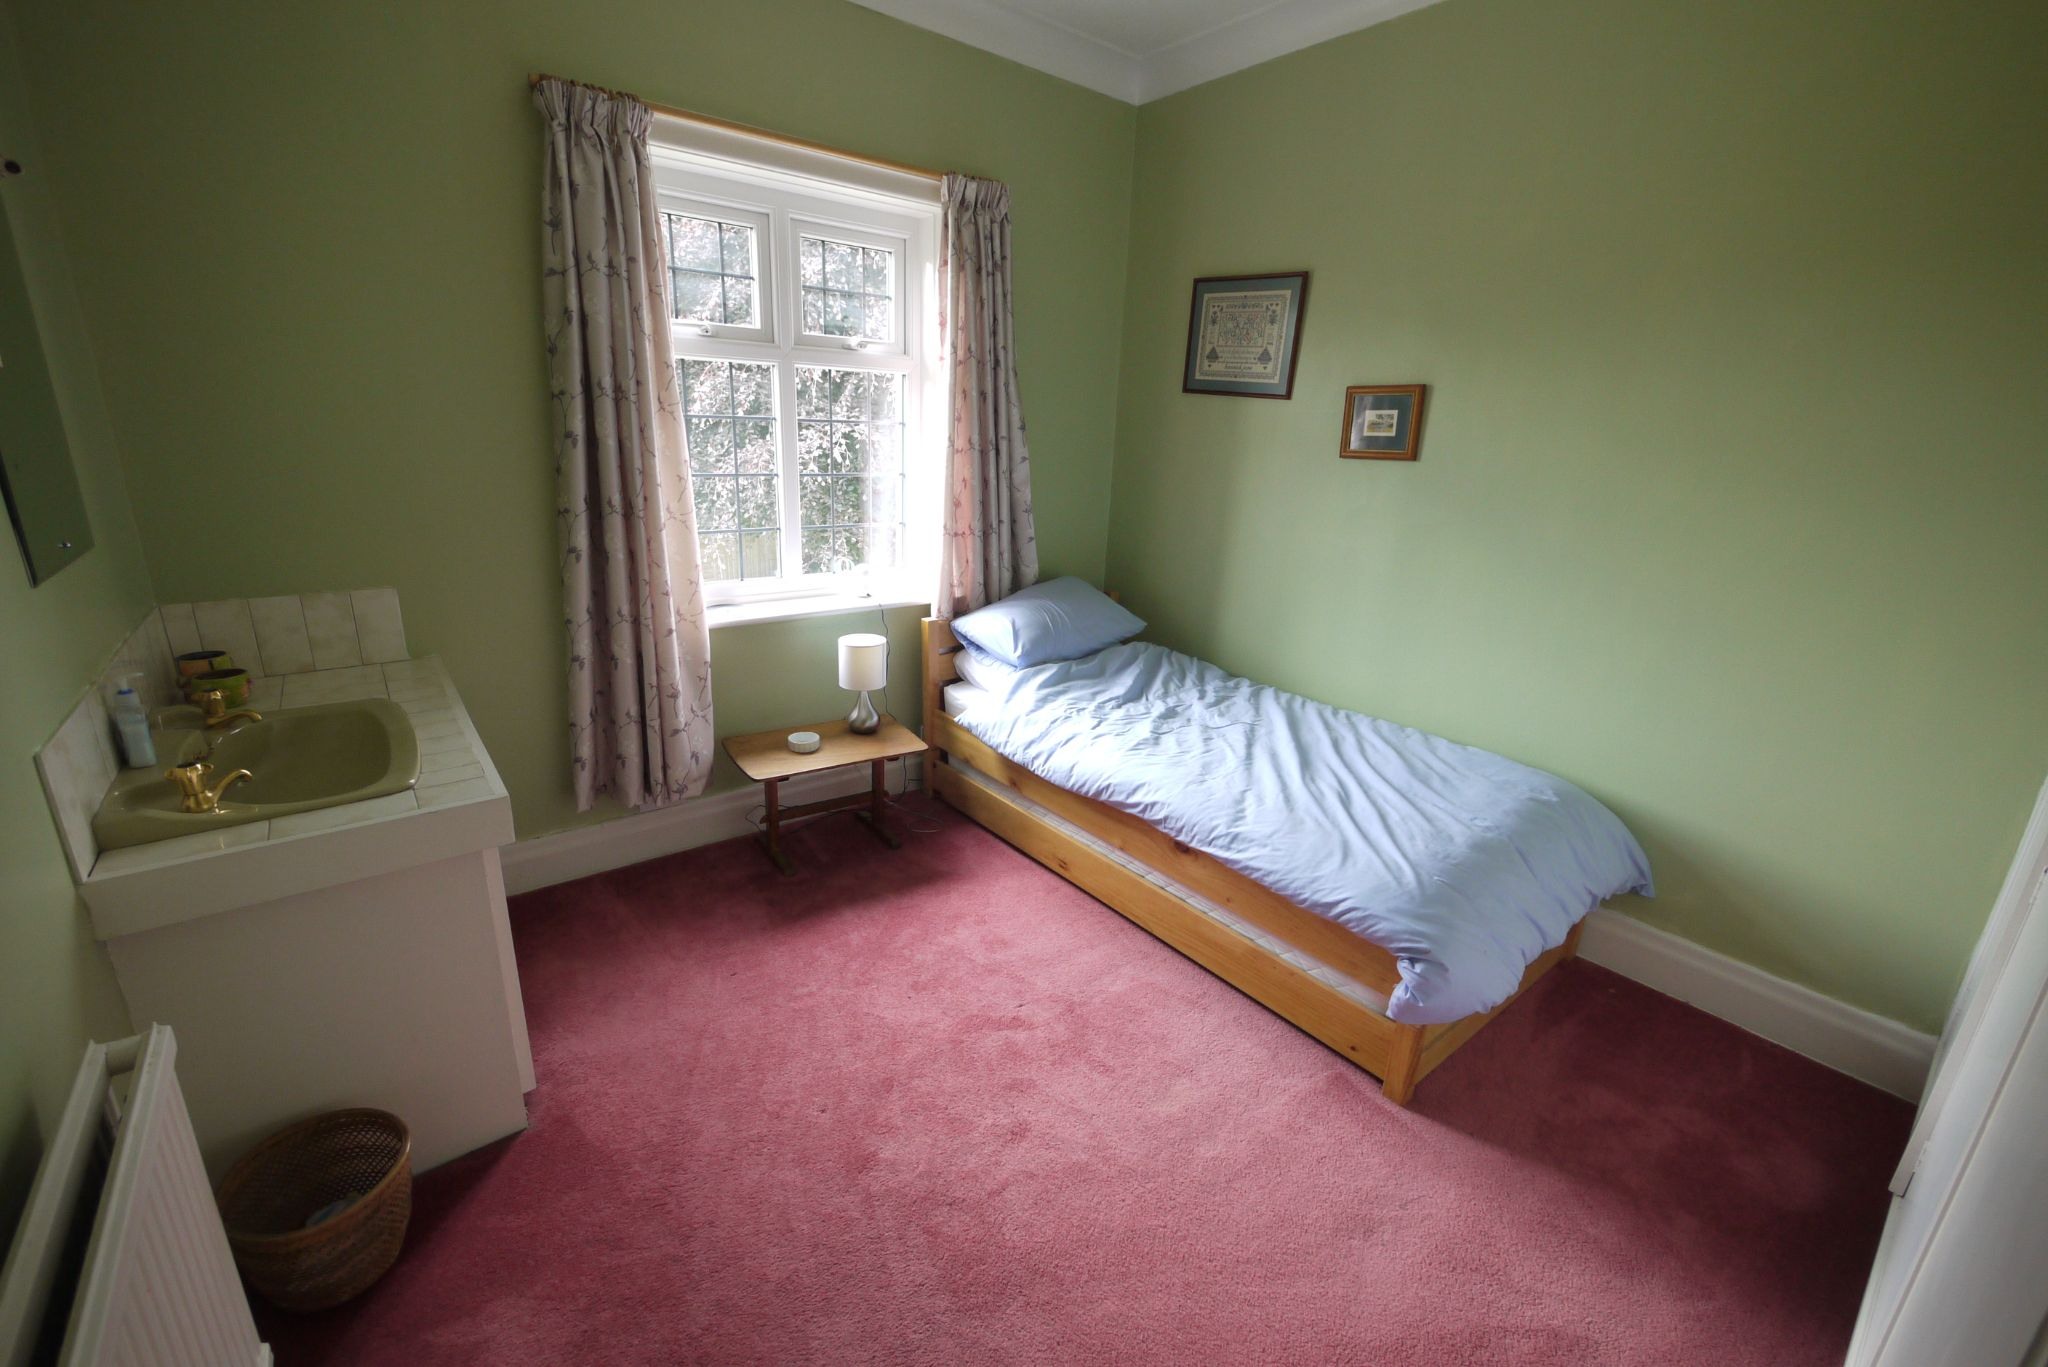 4 bedroom detached house SSTC in Brighouse - Photograph 5.